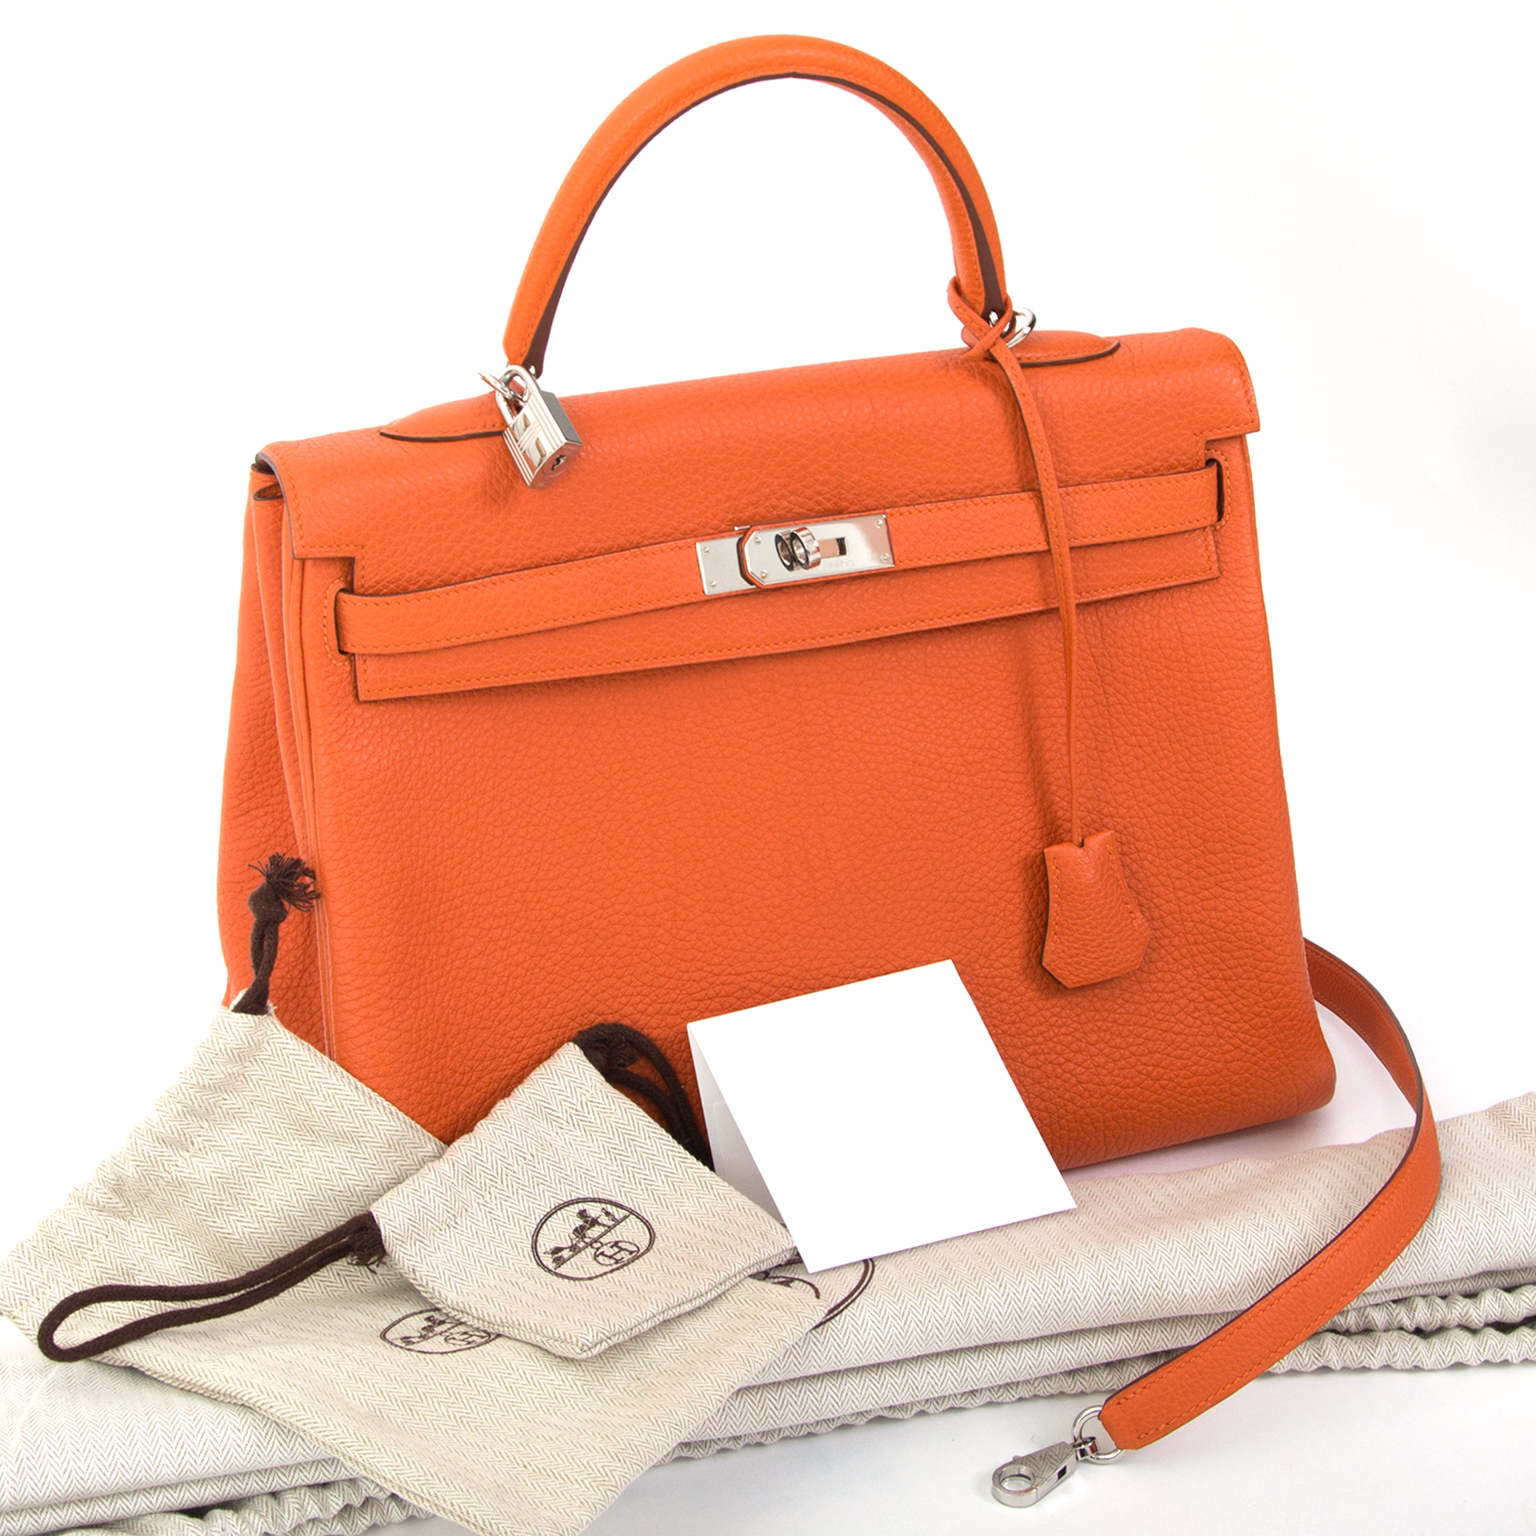 shop online Hermes Orange Kelly 35 Retourne Veau Togo  in perfect condition at the best price